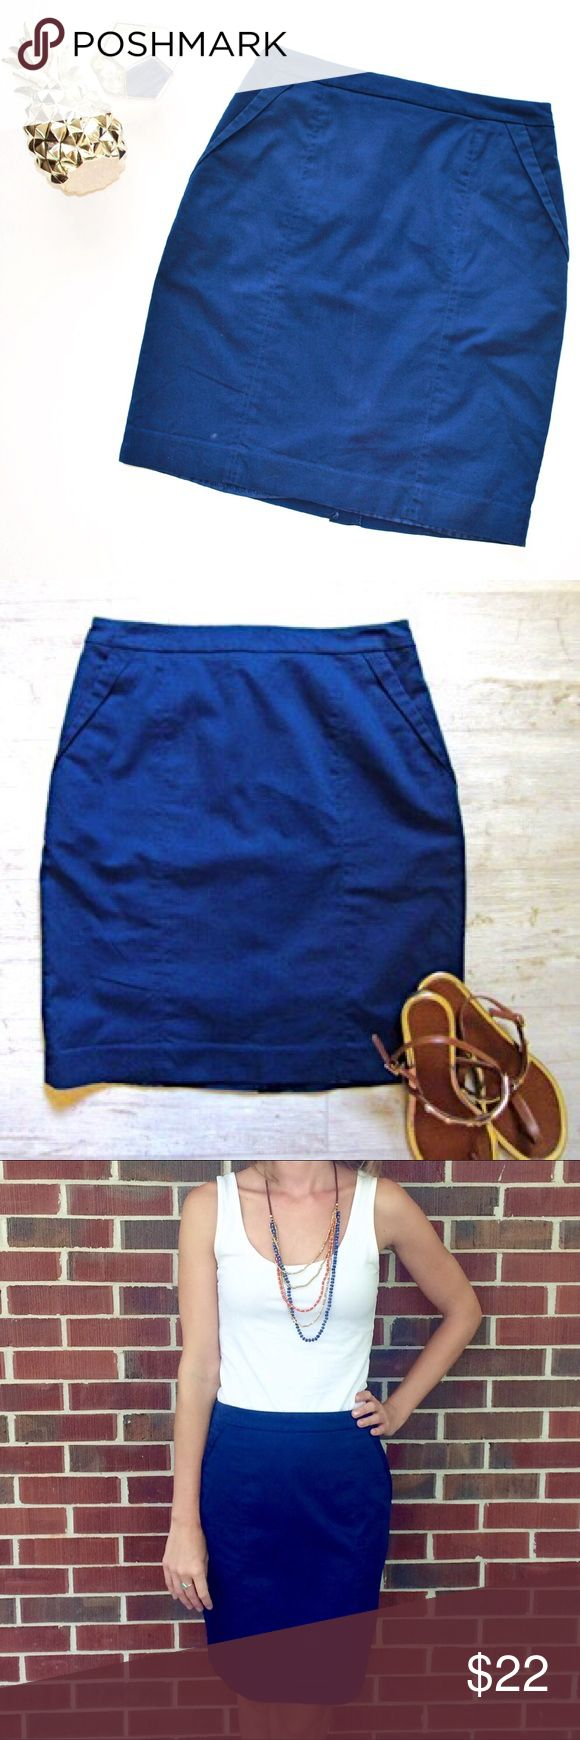 """H&M Blue Pencil Skirt with Pockets A basic navy pencil skirt with added details on the hip and pockets! Fully lined. Length is 19-3/4"""" & waist is 28-1/2"""". Skirt is in perfect condition! H&M Skirts Pencil"""